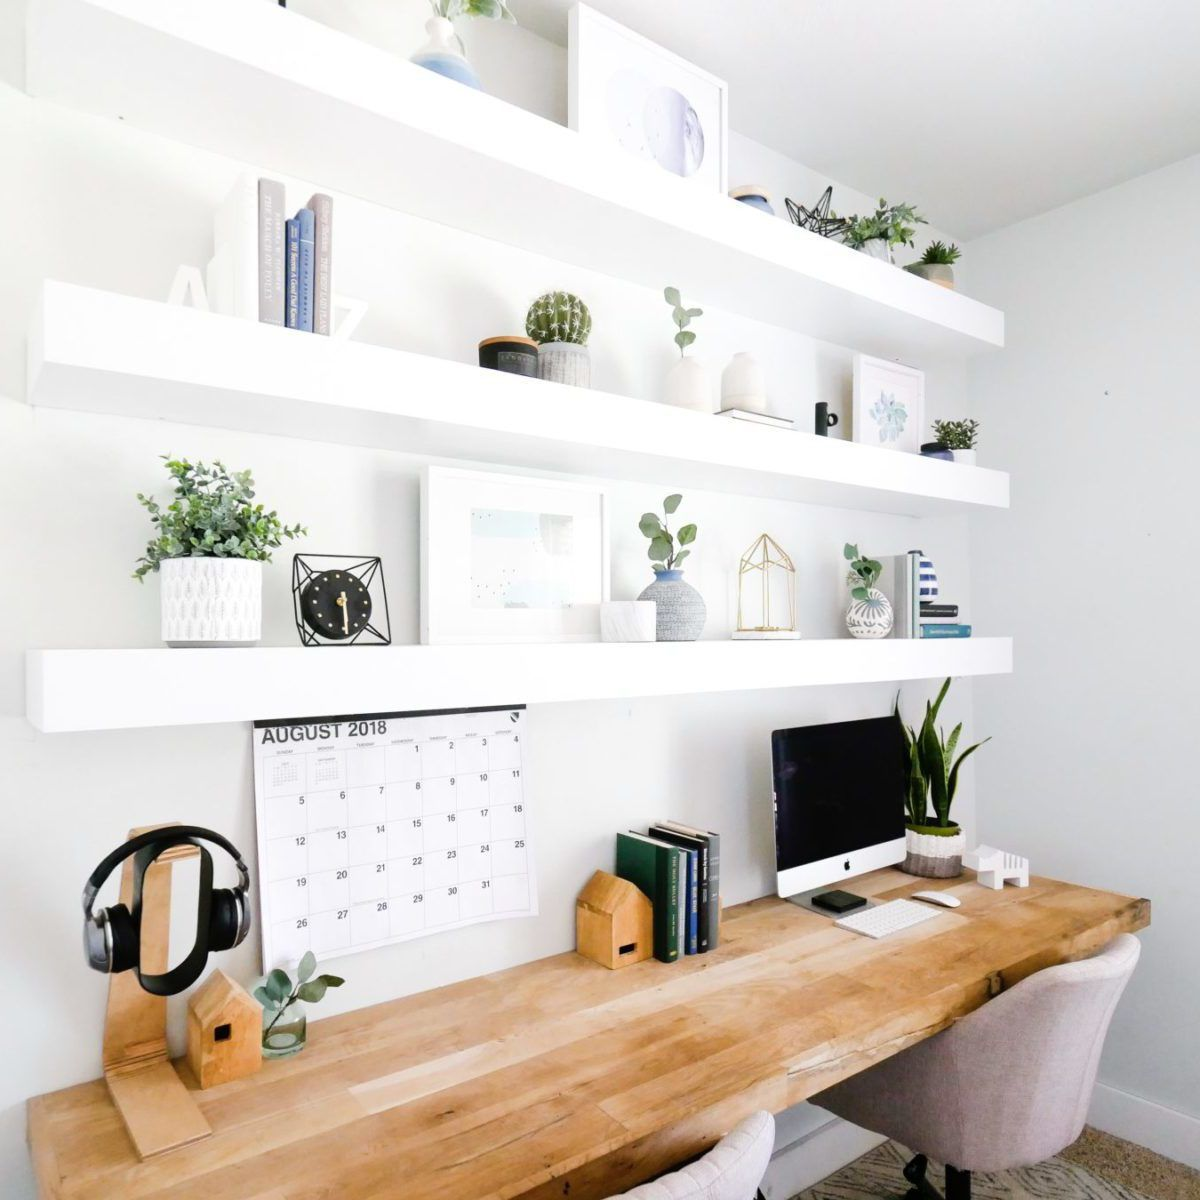 Scandinavian Workspace Inspiration - 6 Modern Home Office Ideas #floatingshelves